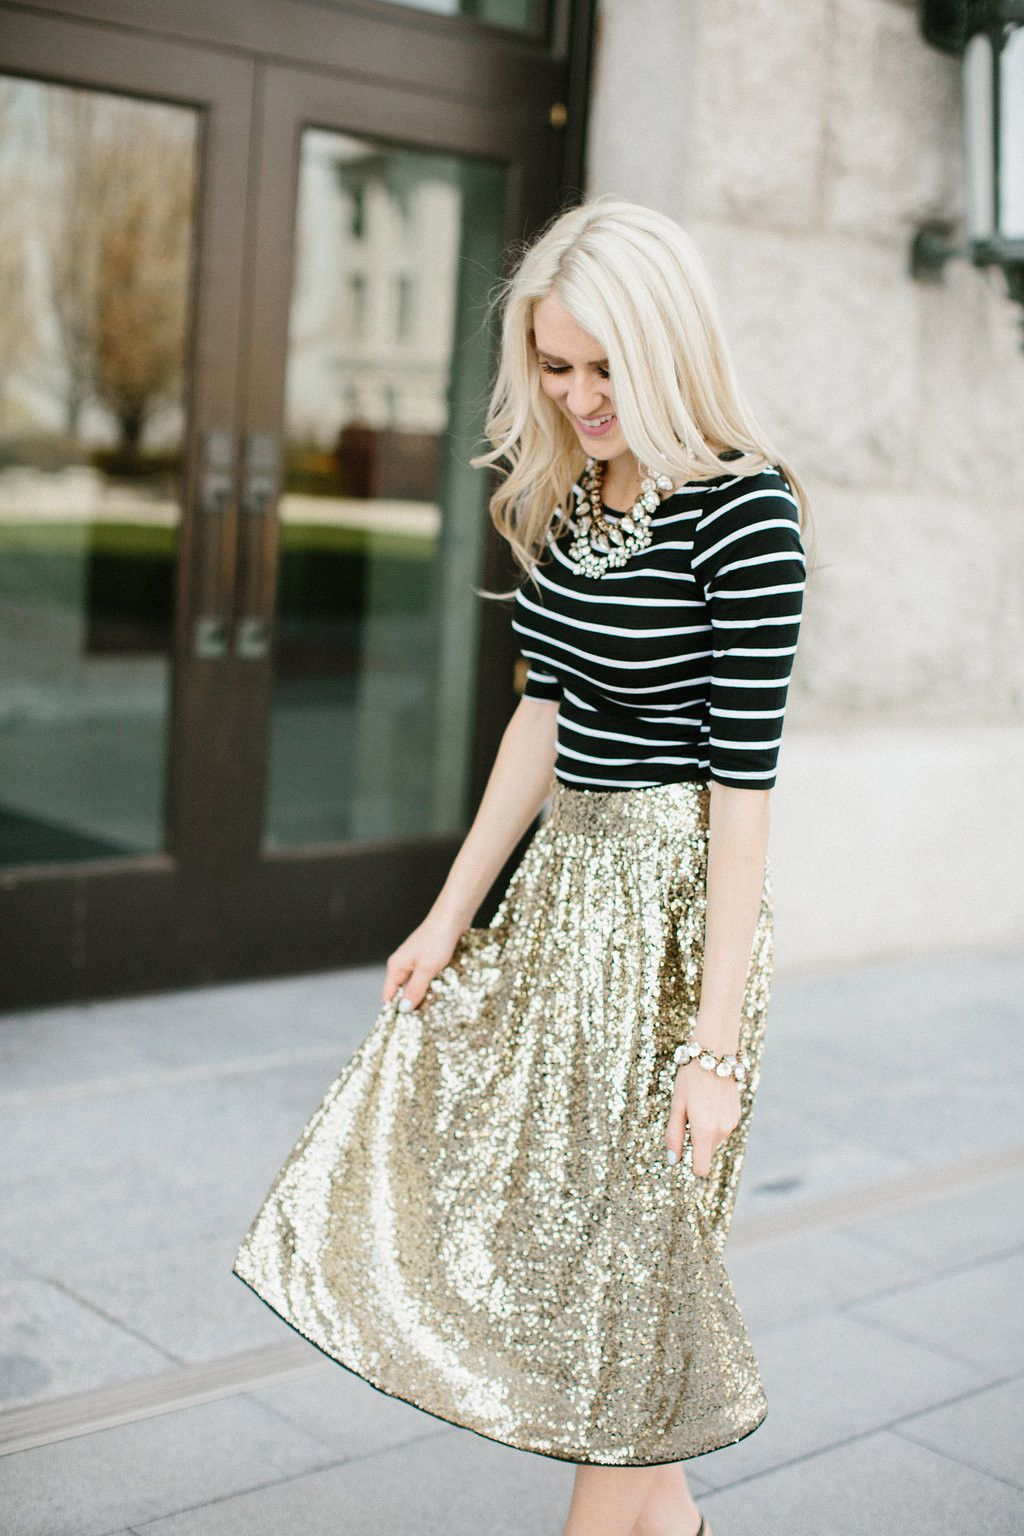 Sequin A-Line Swing Skirt - I want this for Christmas @djjohnson57 ...